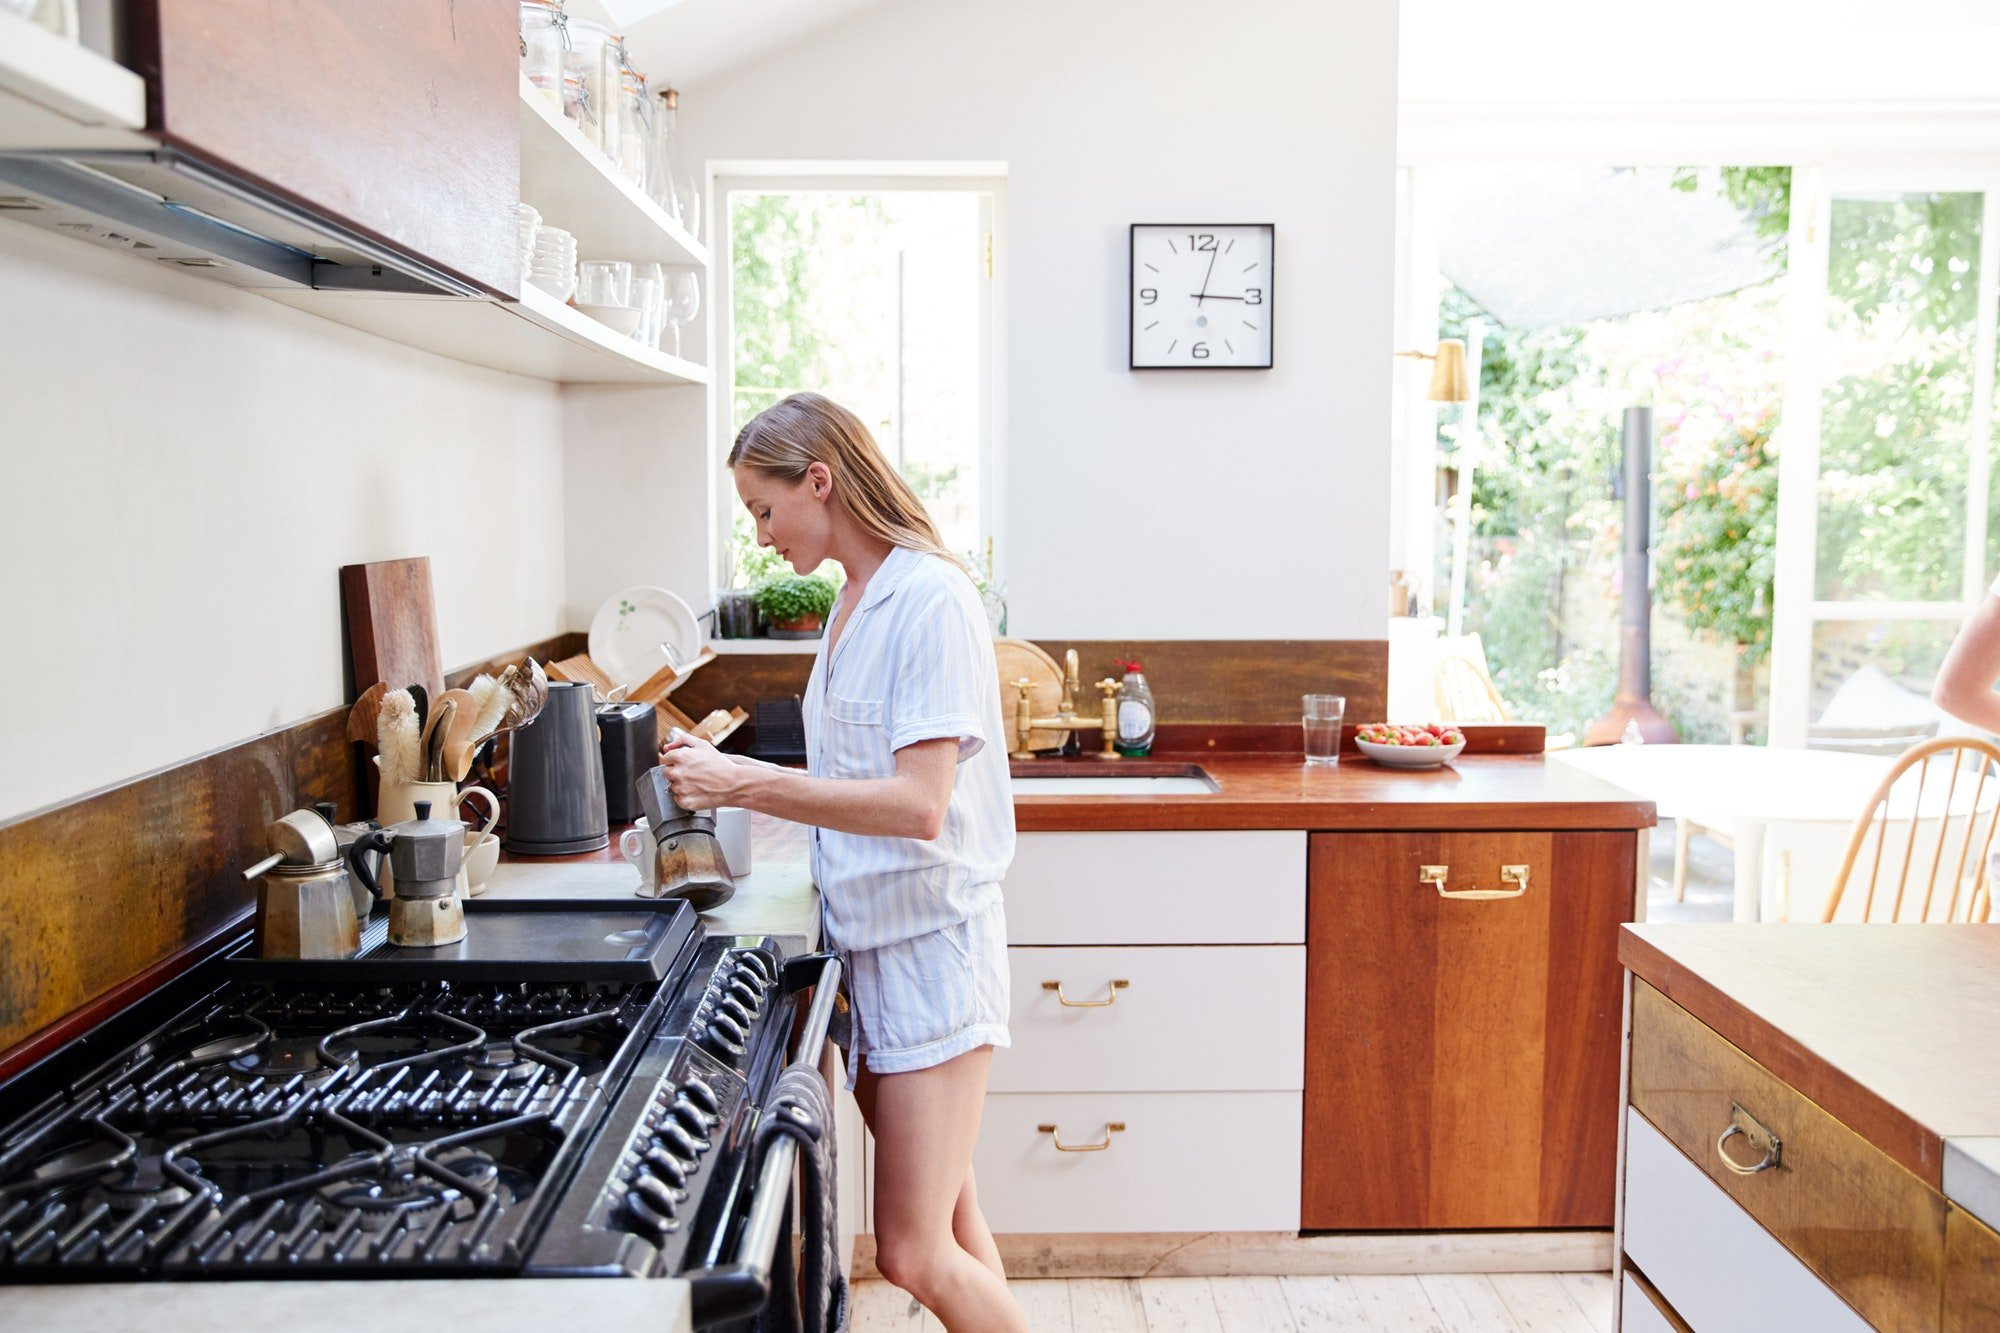 Woman Wearing Pajamas At Home In Kitchen Making Fresh Coffee